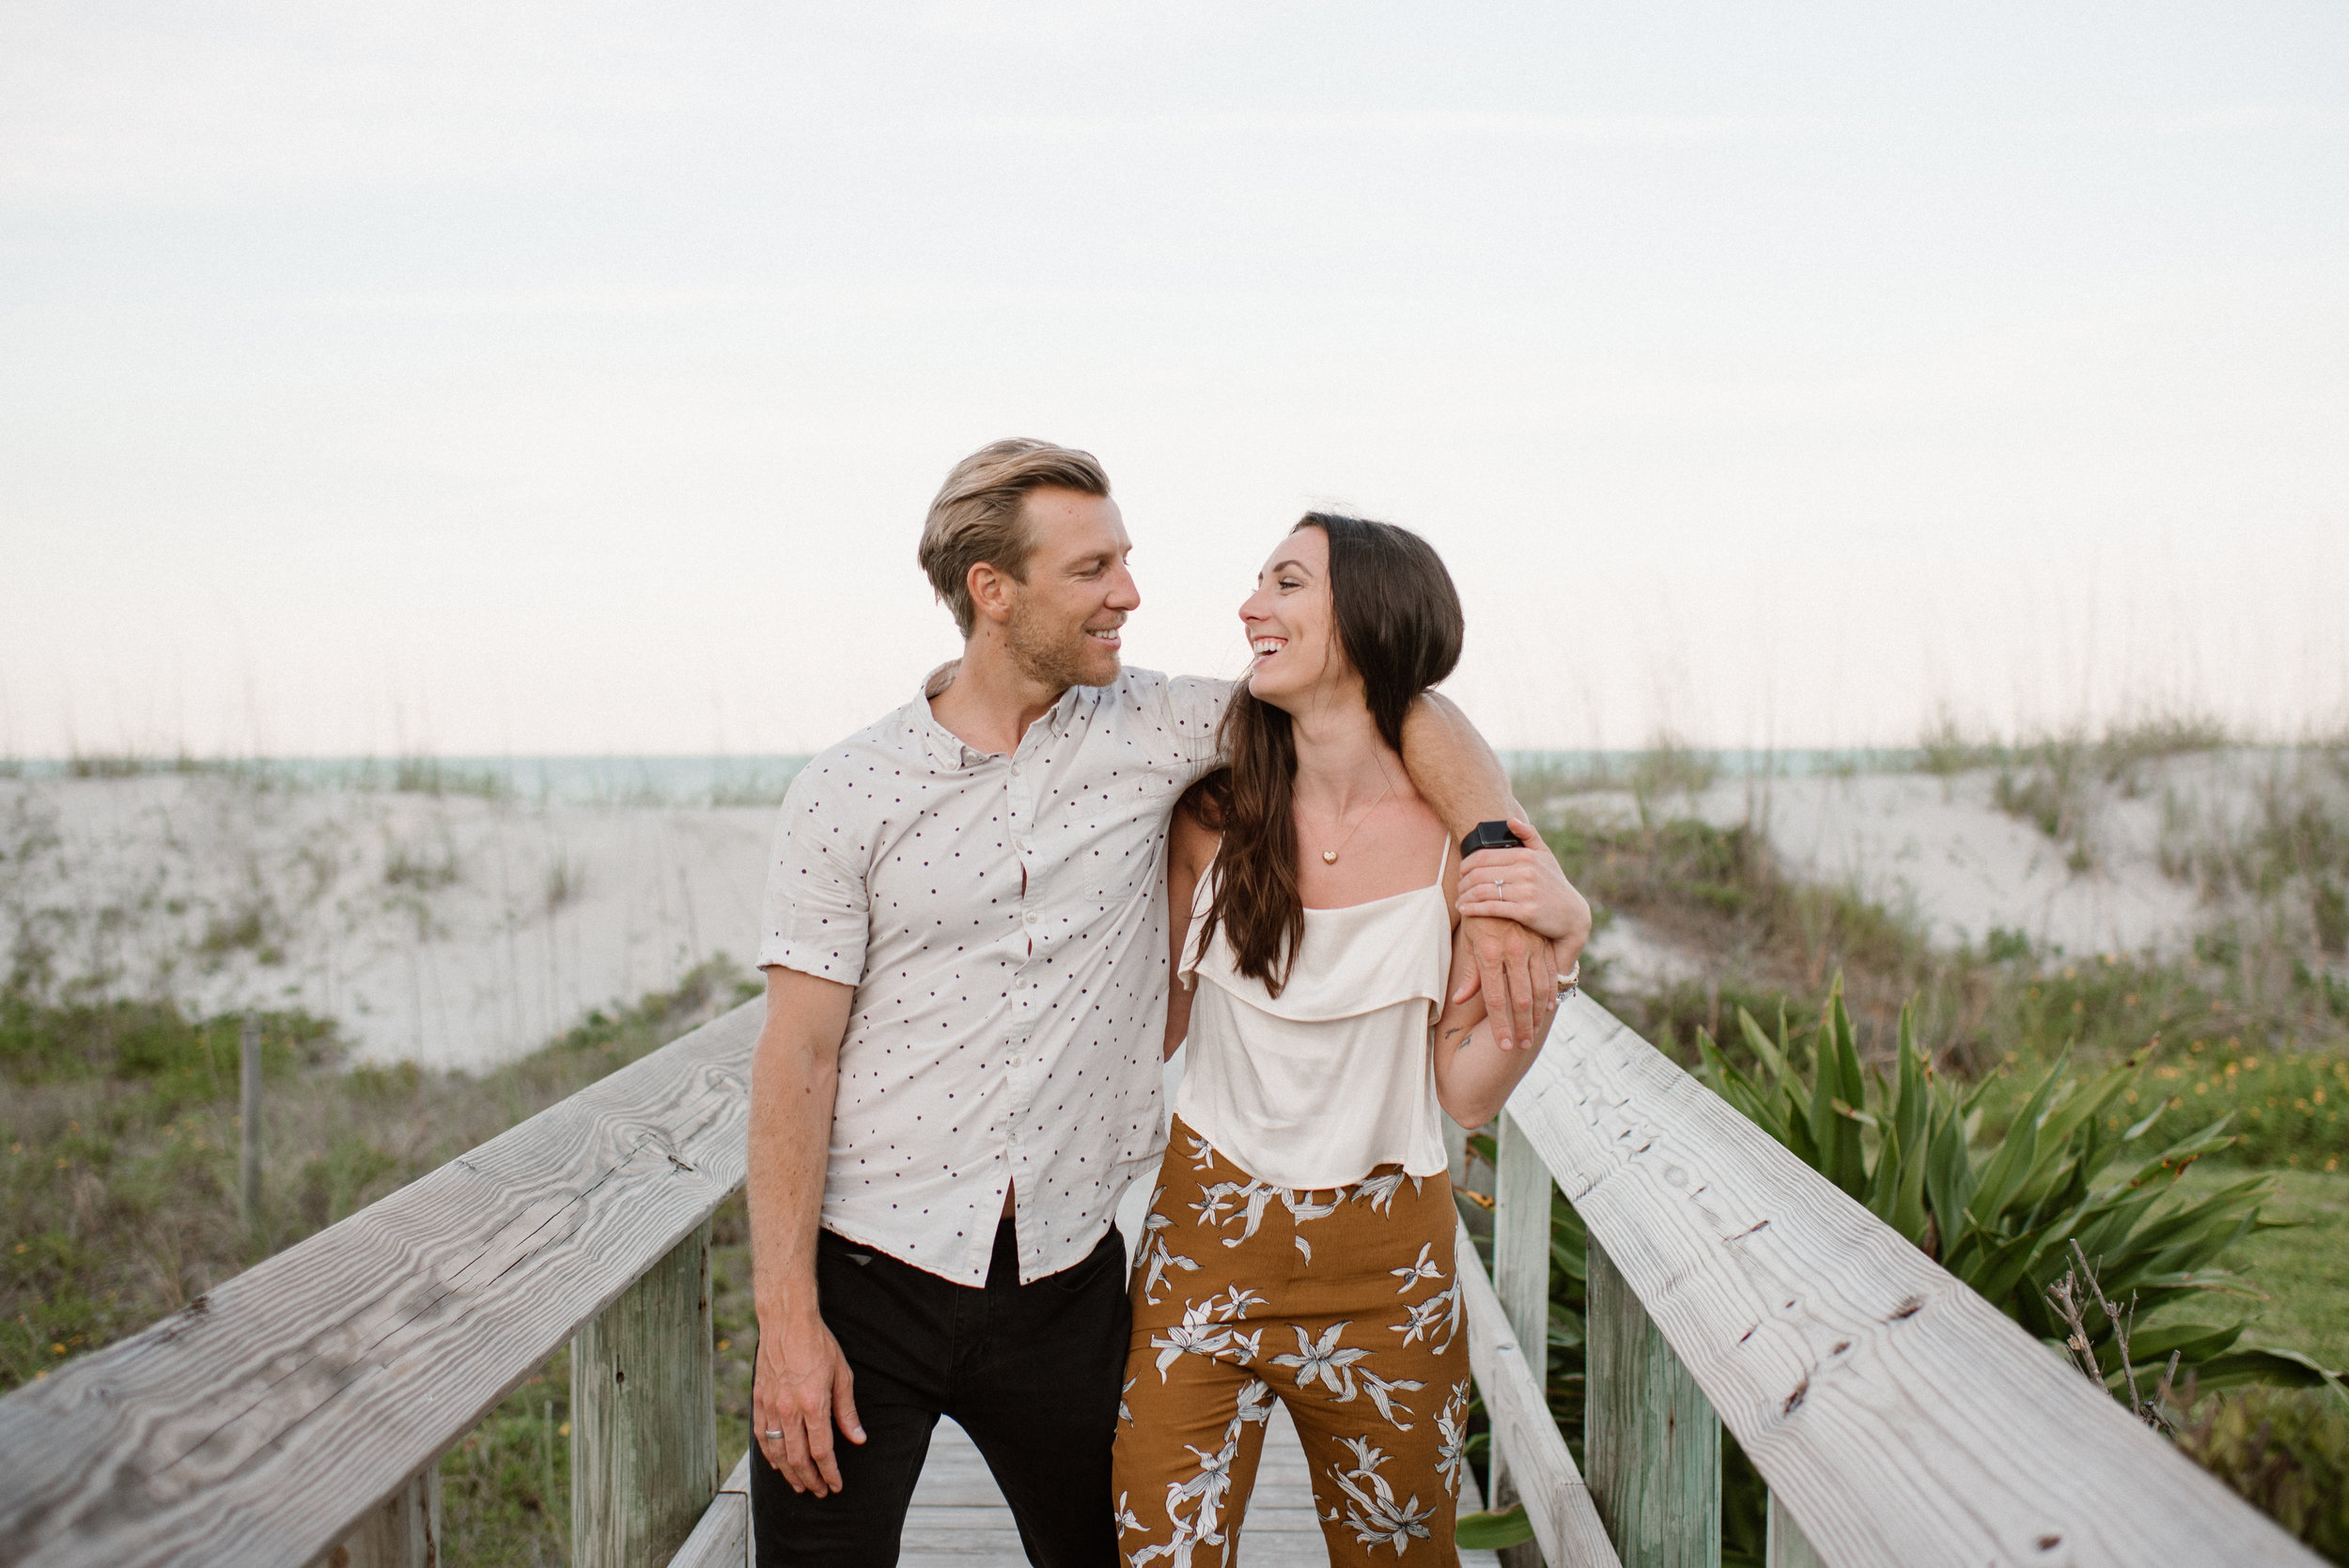 atlantic-beach-engagement-photos-heather-and-cody-95.jpg